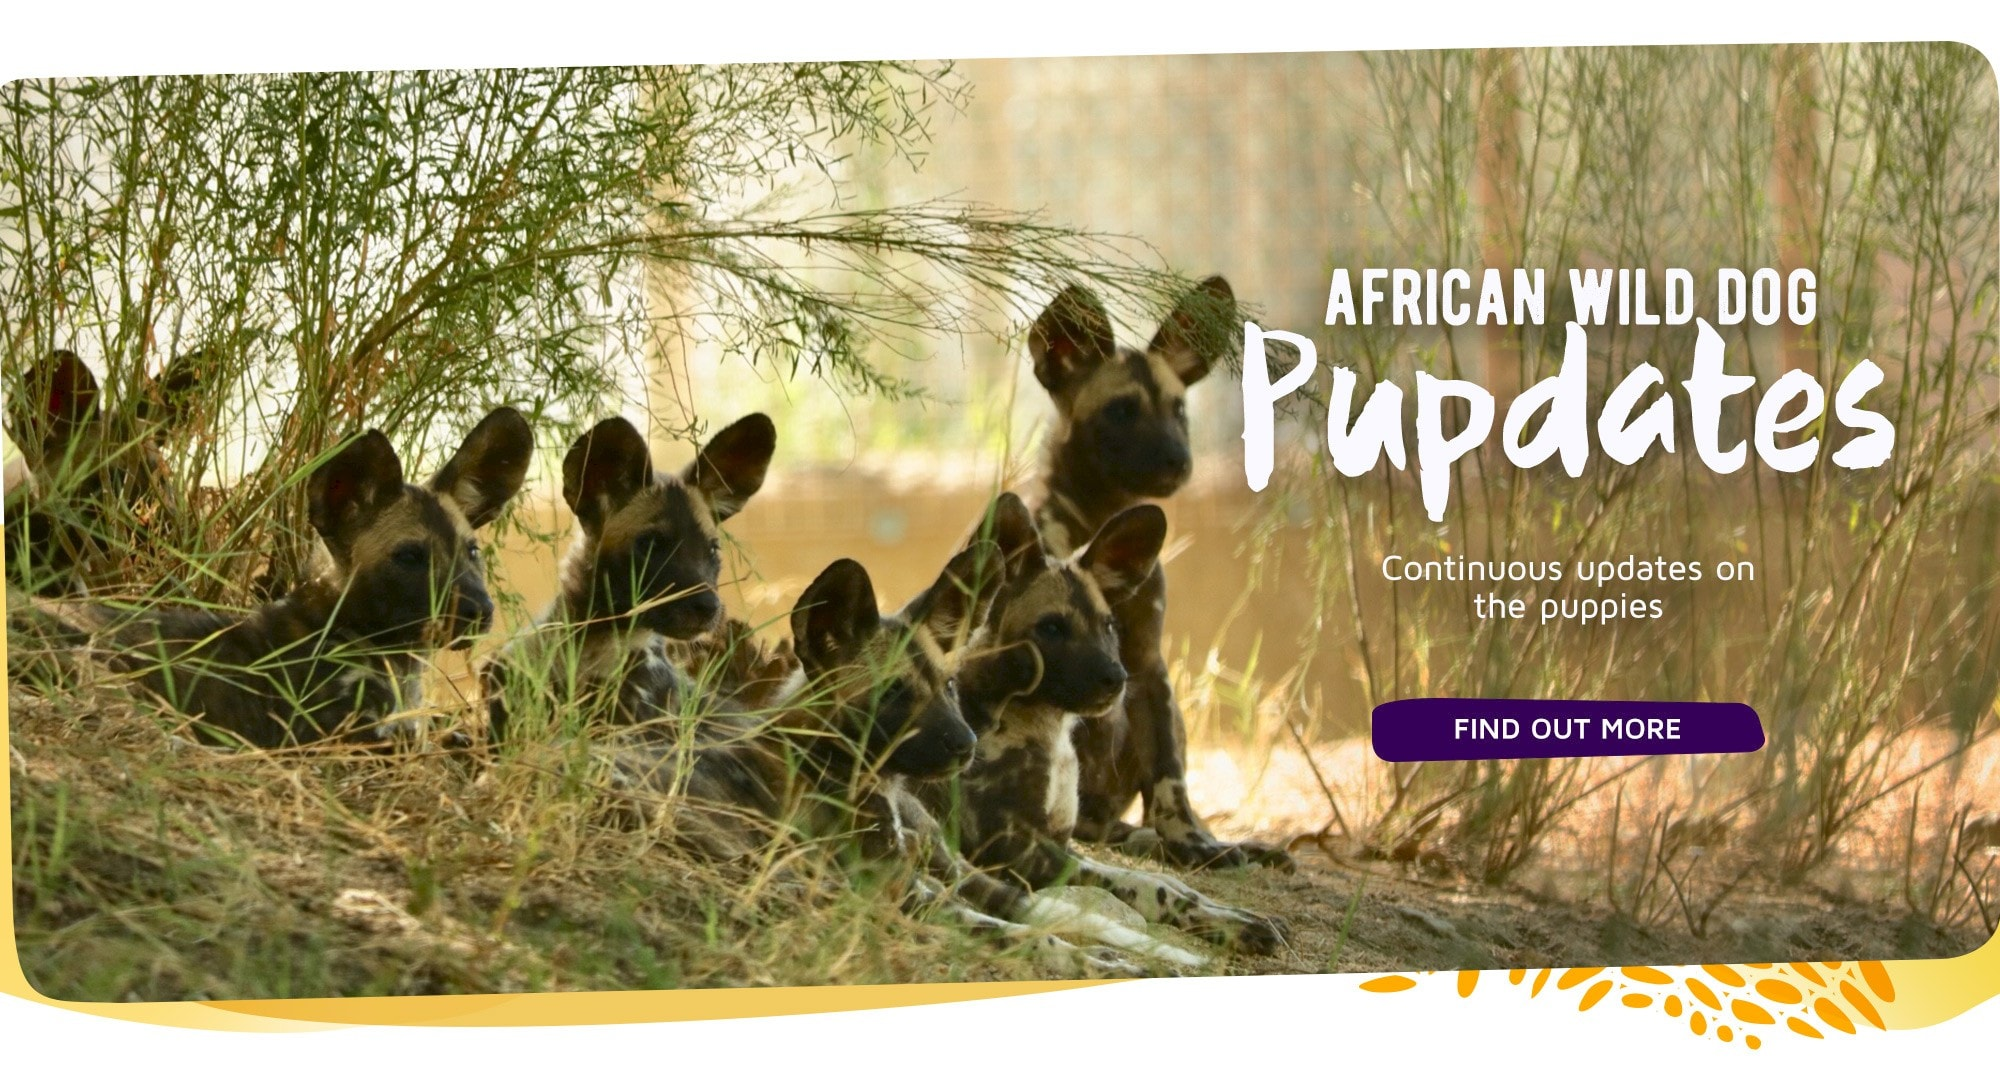 Continuous updates on the African wild dog puppies. Click for full updates.